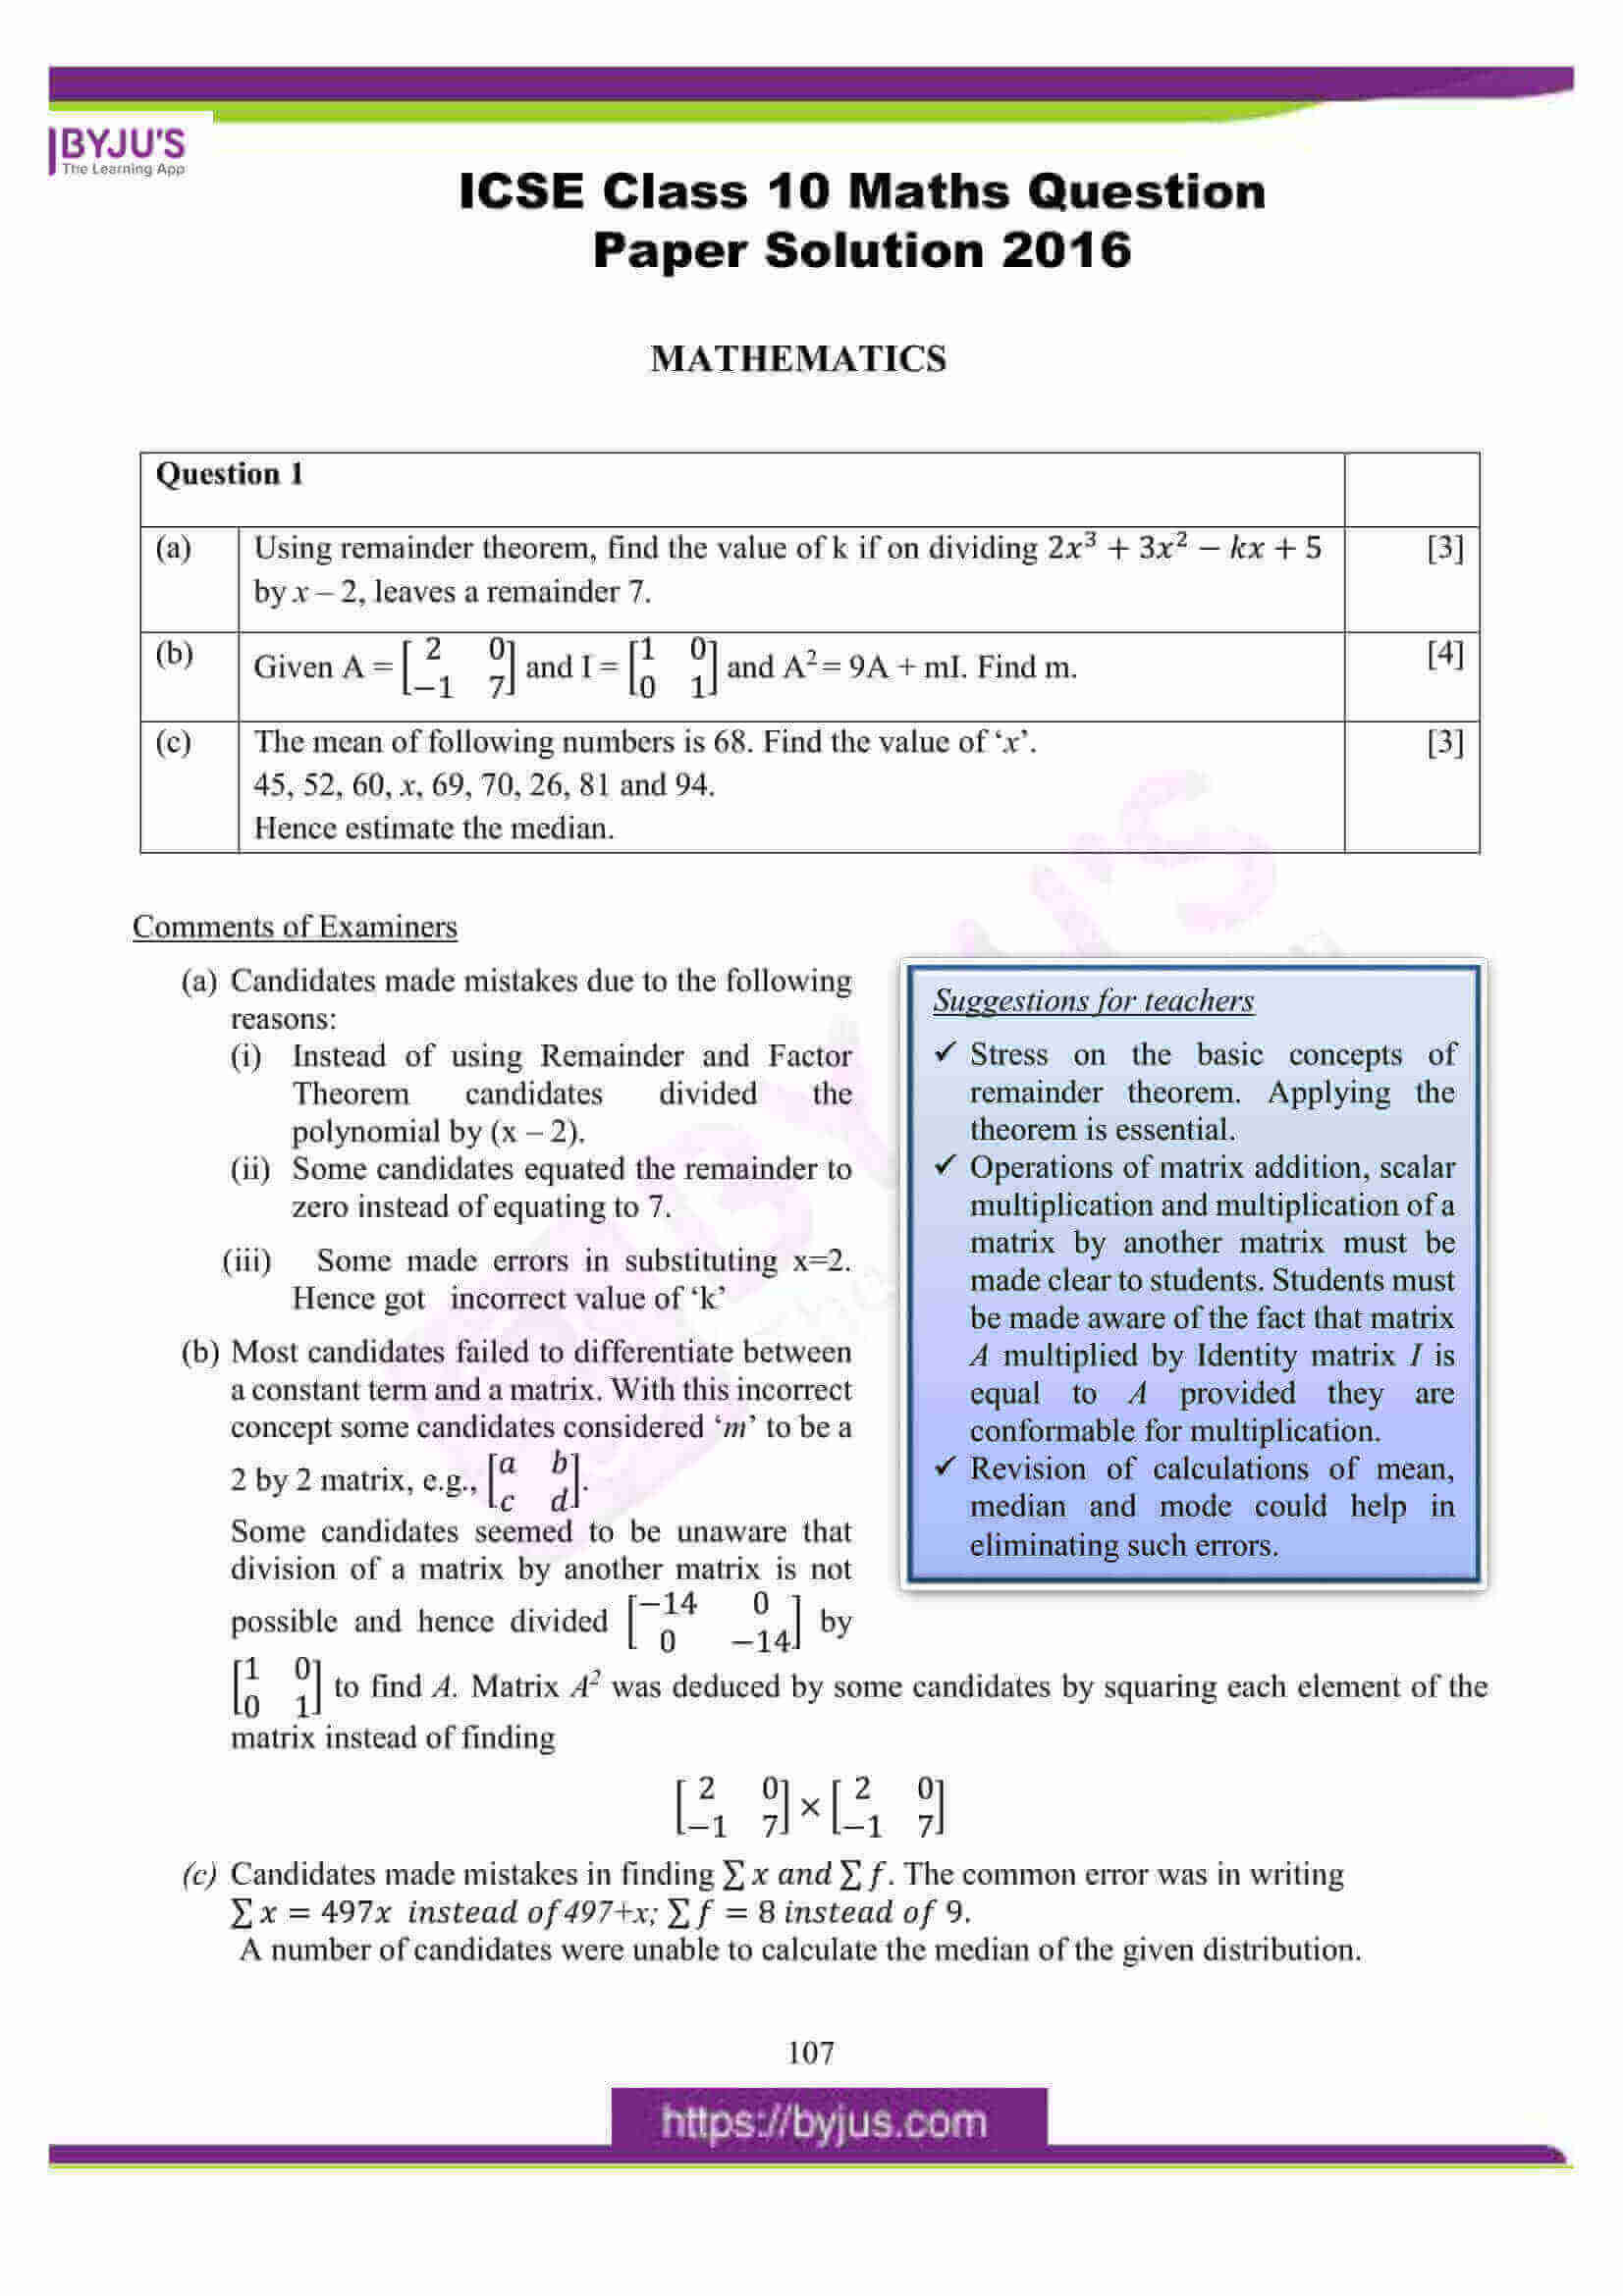 icse class 10 maths question paper solution 2016 01